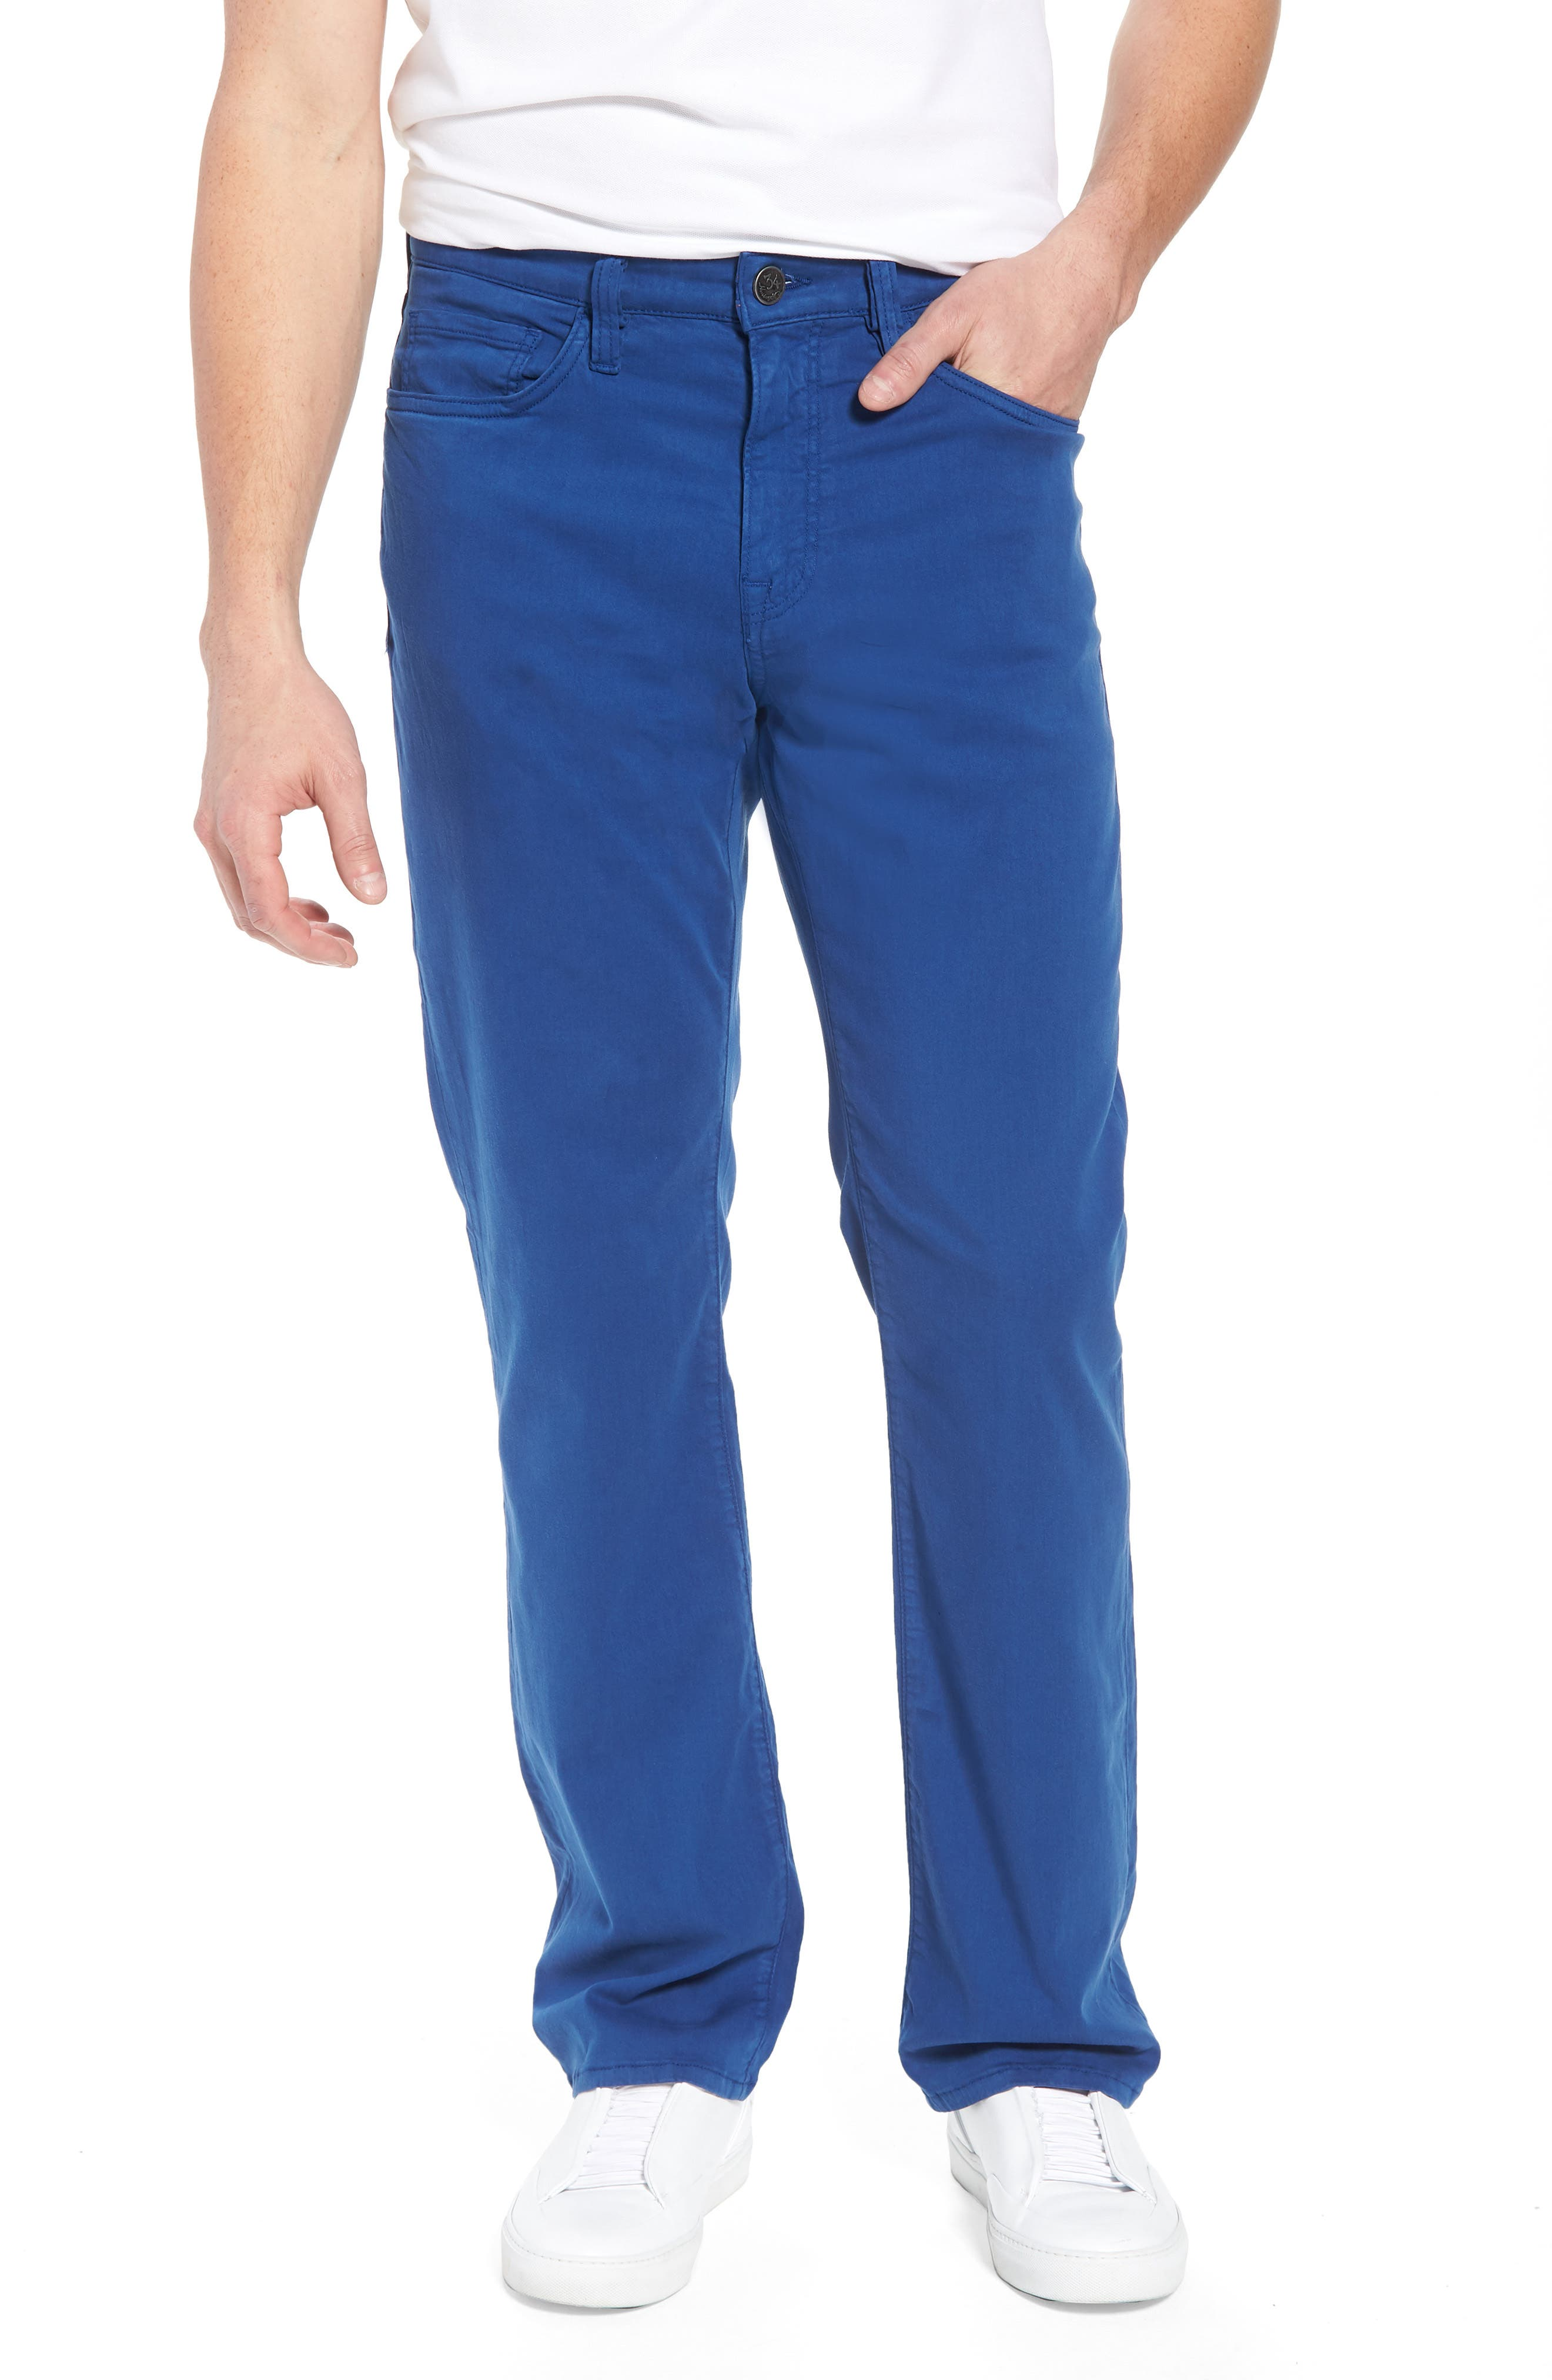 Charisma Relaxed Fit Jeans,                         Main,                         color, ROYAL TWILL